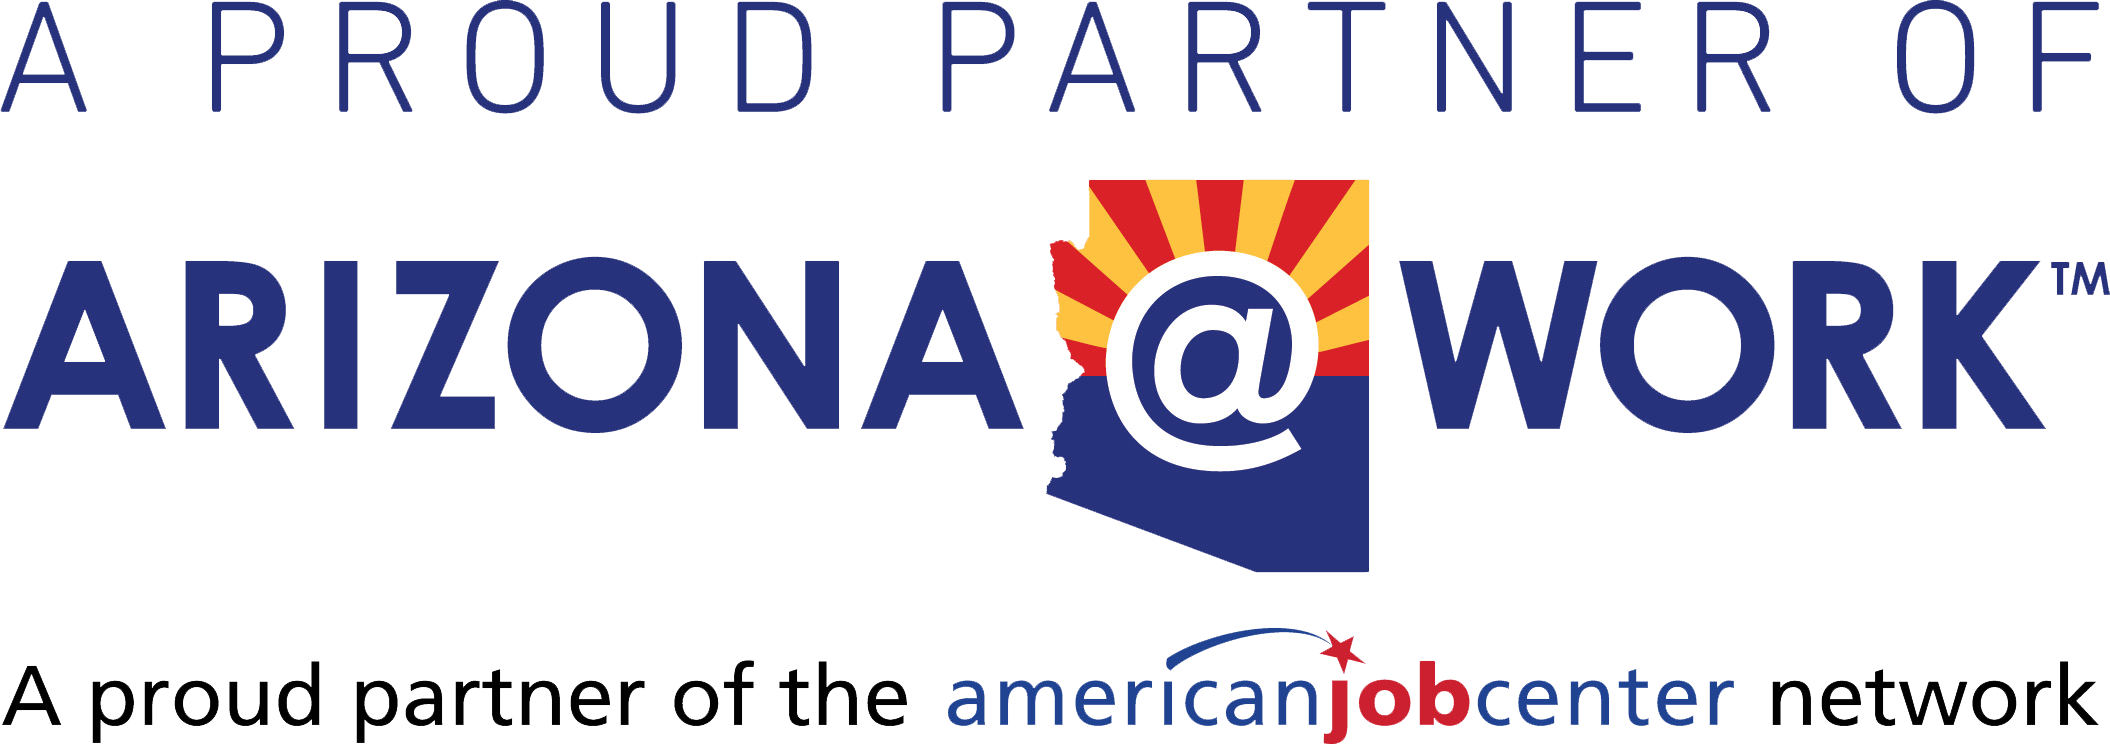 Arizona at work - Innovative Workforce Solutions